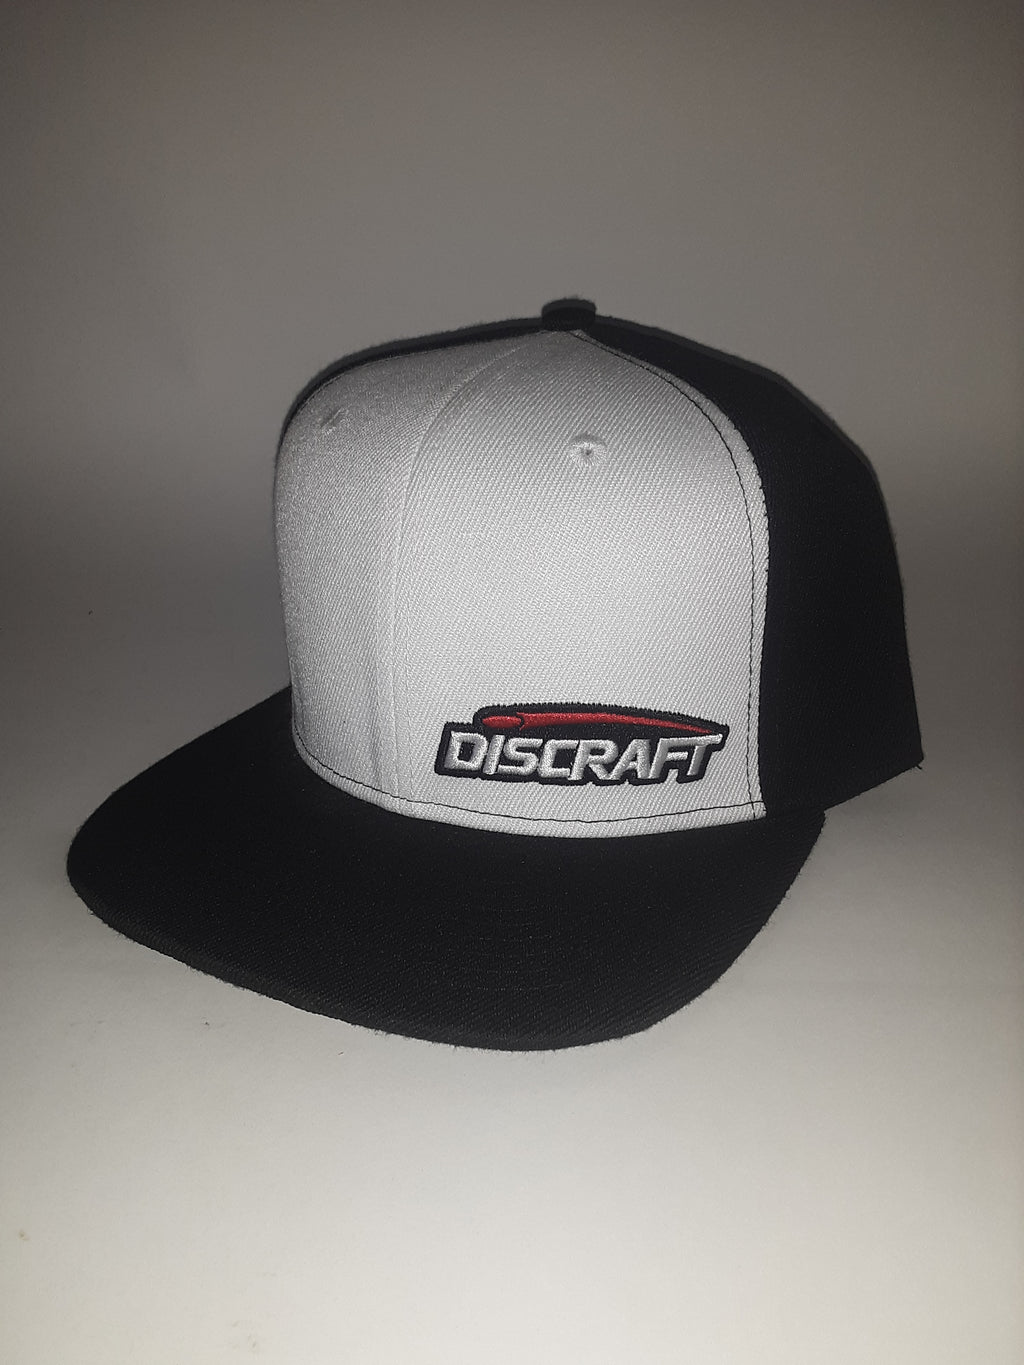 Discraft Flat Bill Snap Back